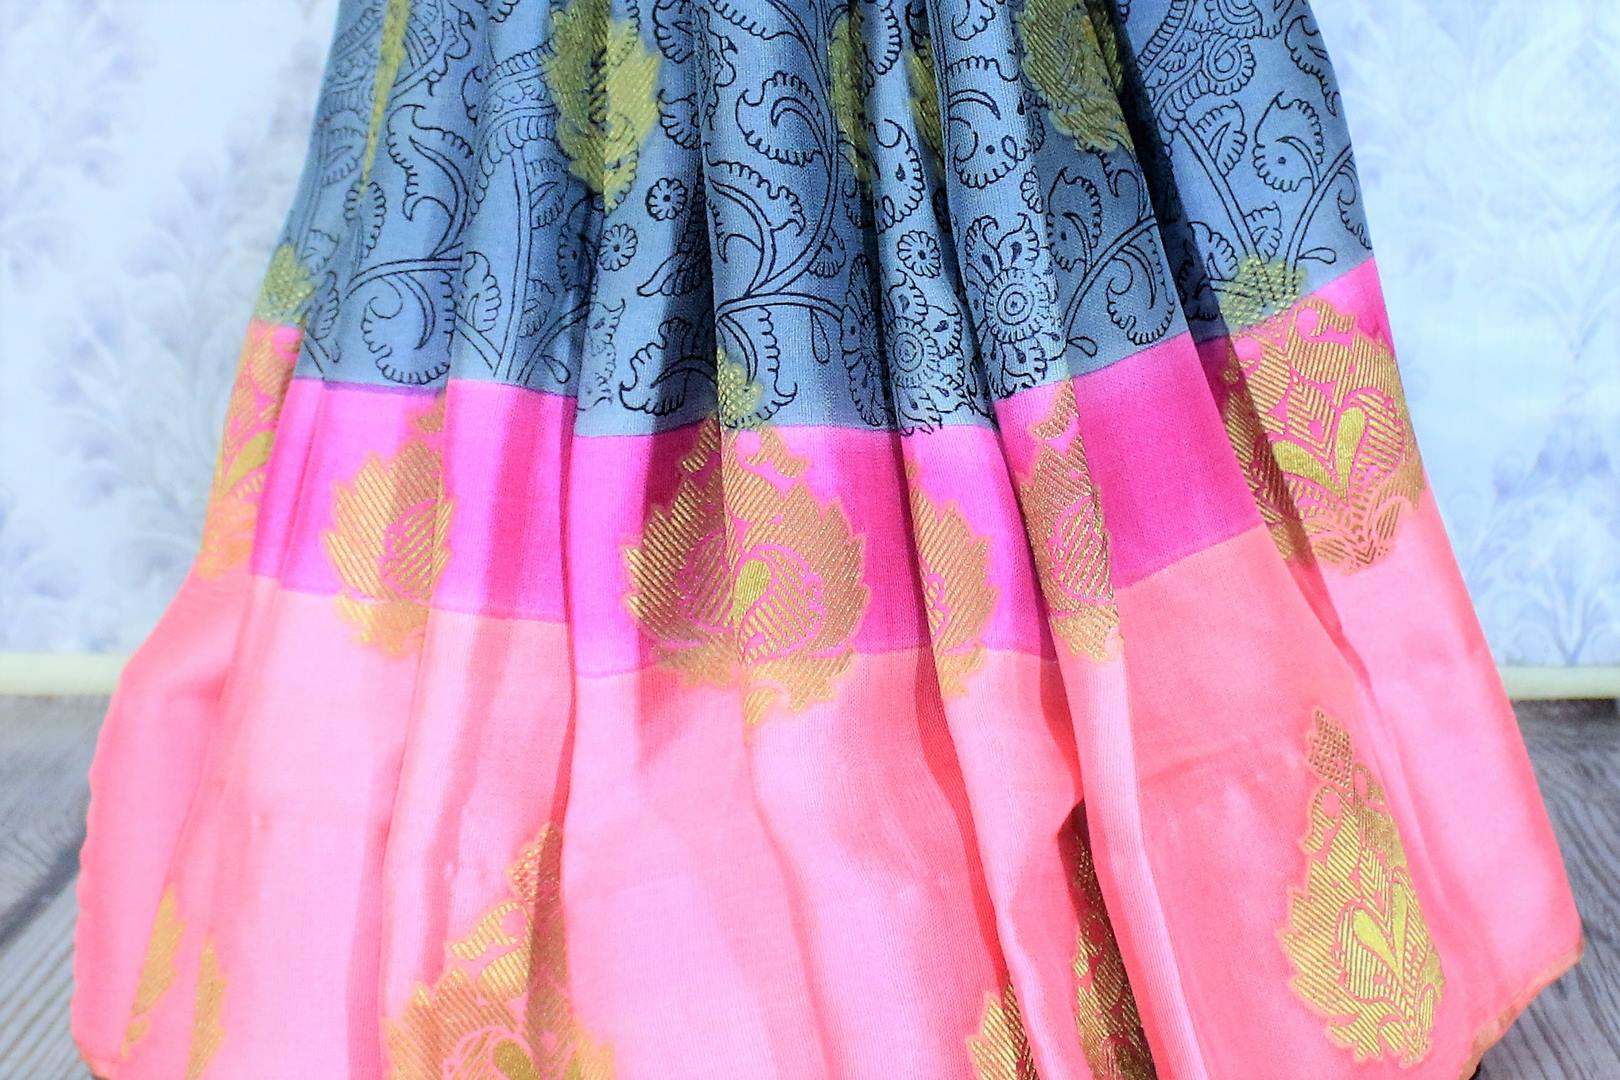 Savour the graceful grey floral printed half-half designer mulberry silk sari. The gorgeous zari detailing all over the saree with contrast rose pink combination in the blouse is striking enough to get drooling. Shop such festive traditional silk sarees online or visit Pure Elegance store in USA. -pleats